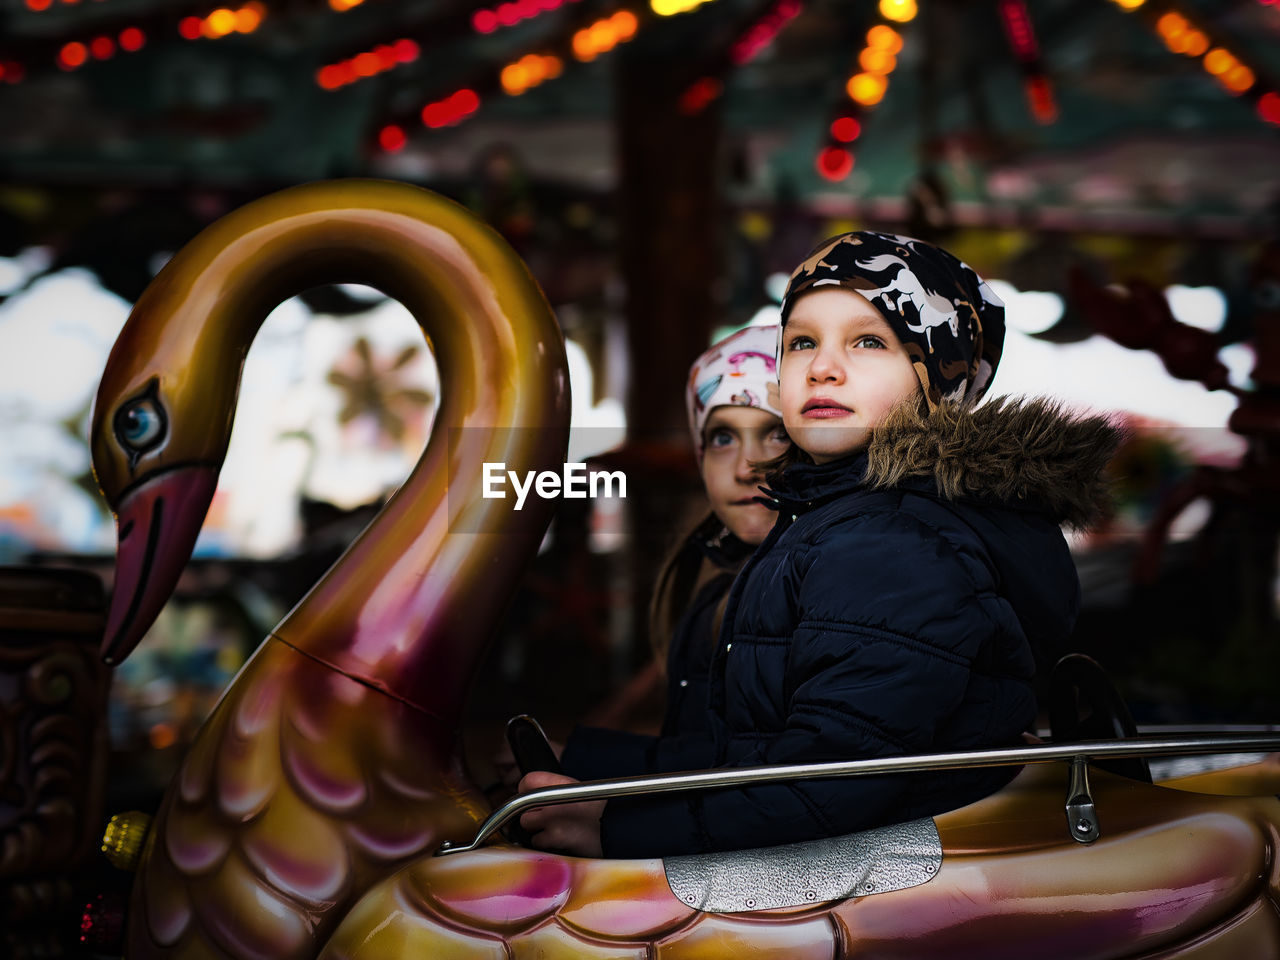 Girls Looking Away While Sitting On Amusement Park Ride